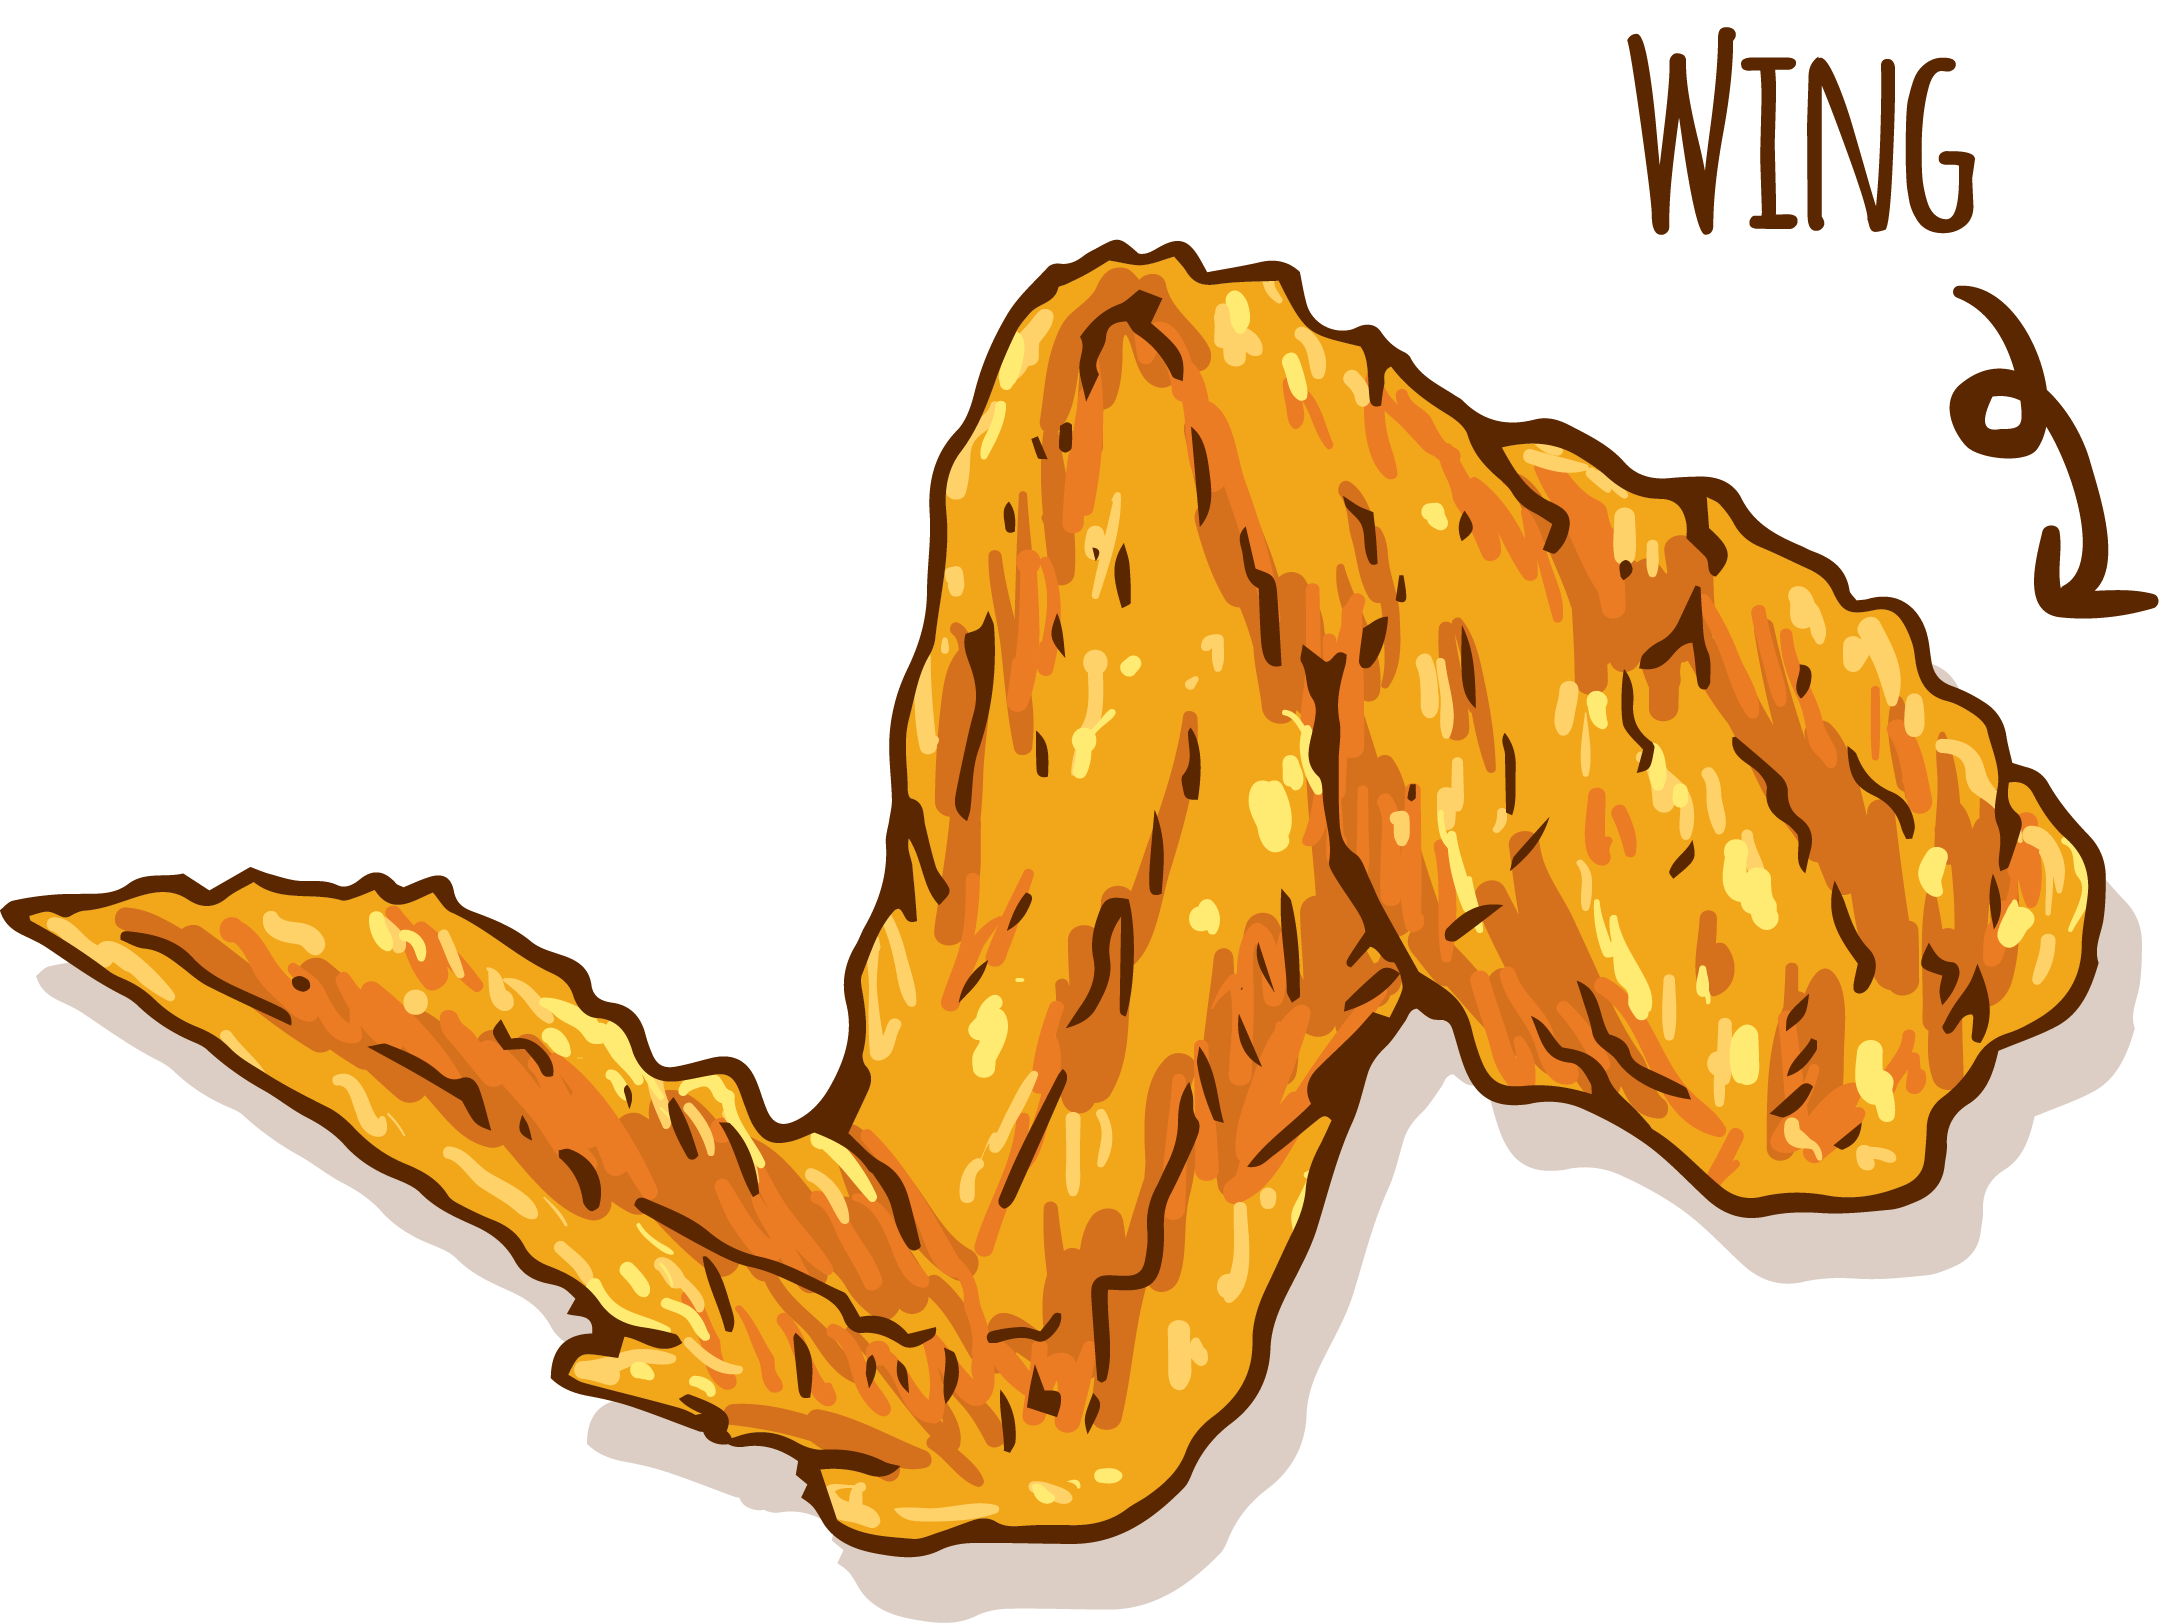 Chicken wings clipart clipart images gallery for free download.